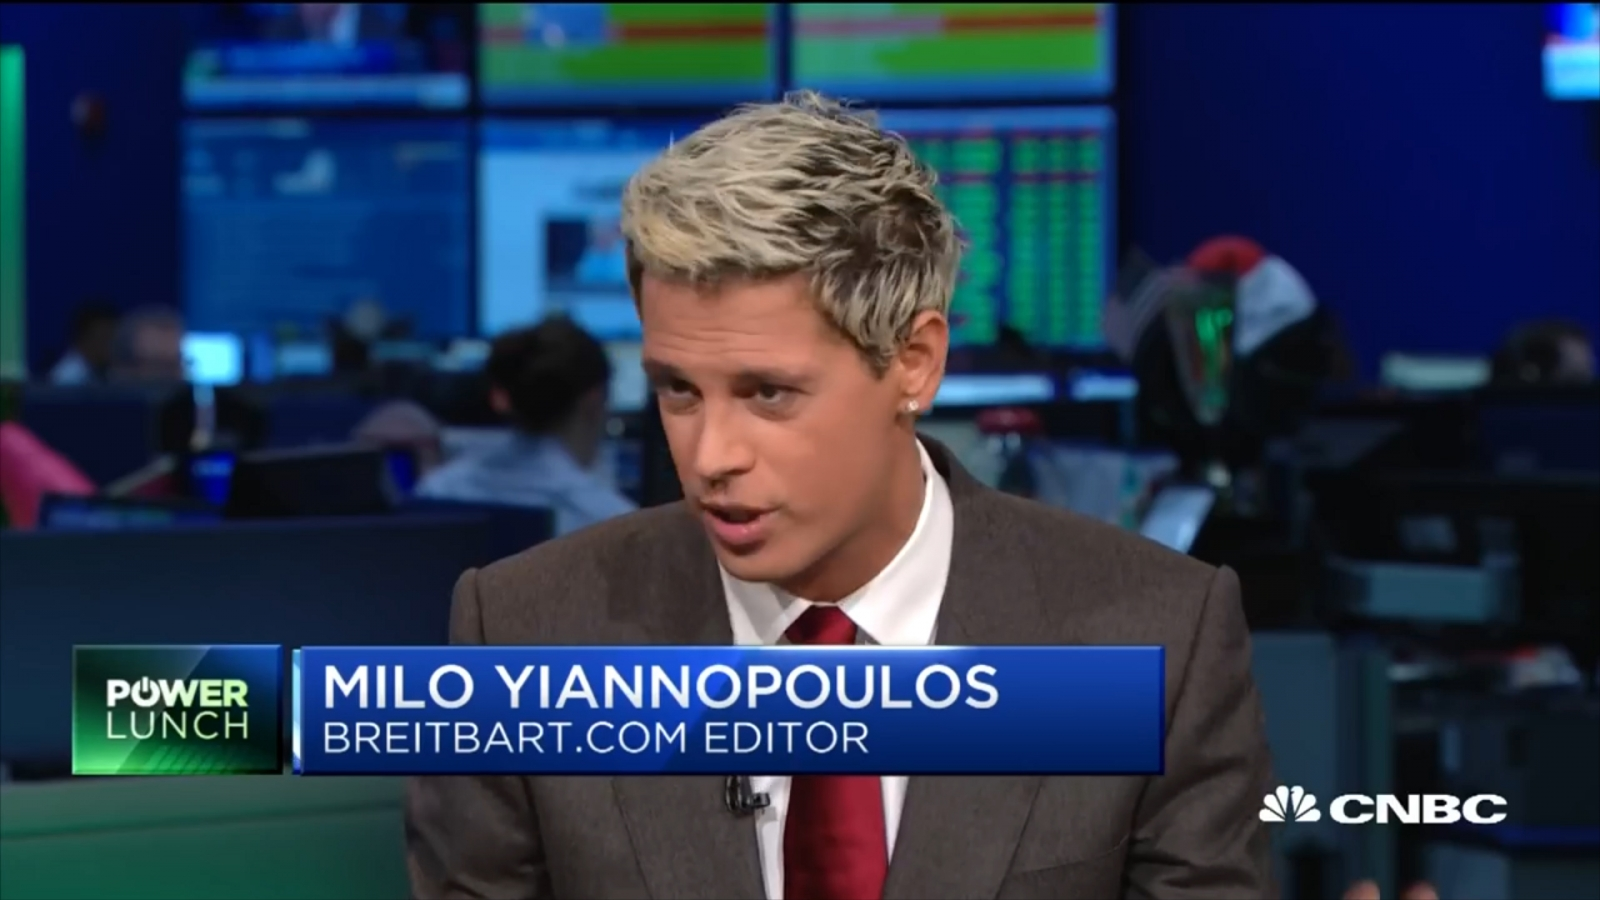 Milo Yiannopoulos Vs. Twitter, Colin Kaepernick, Media's Portrayal Of The Alt-Right